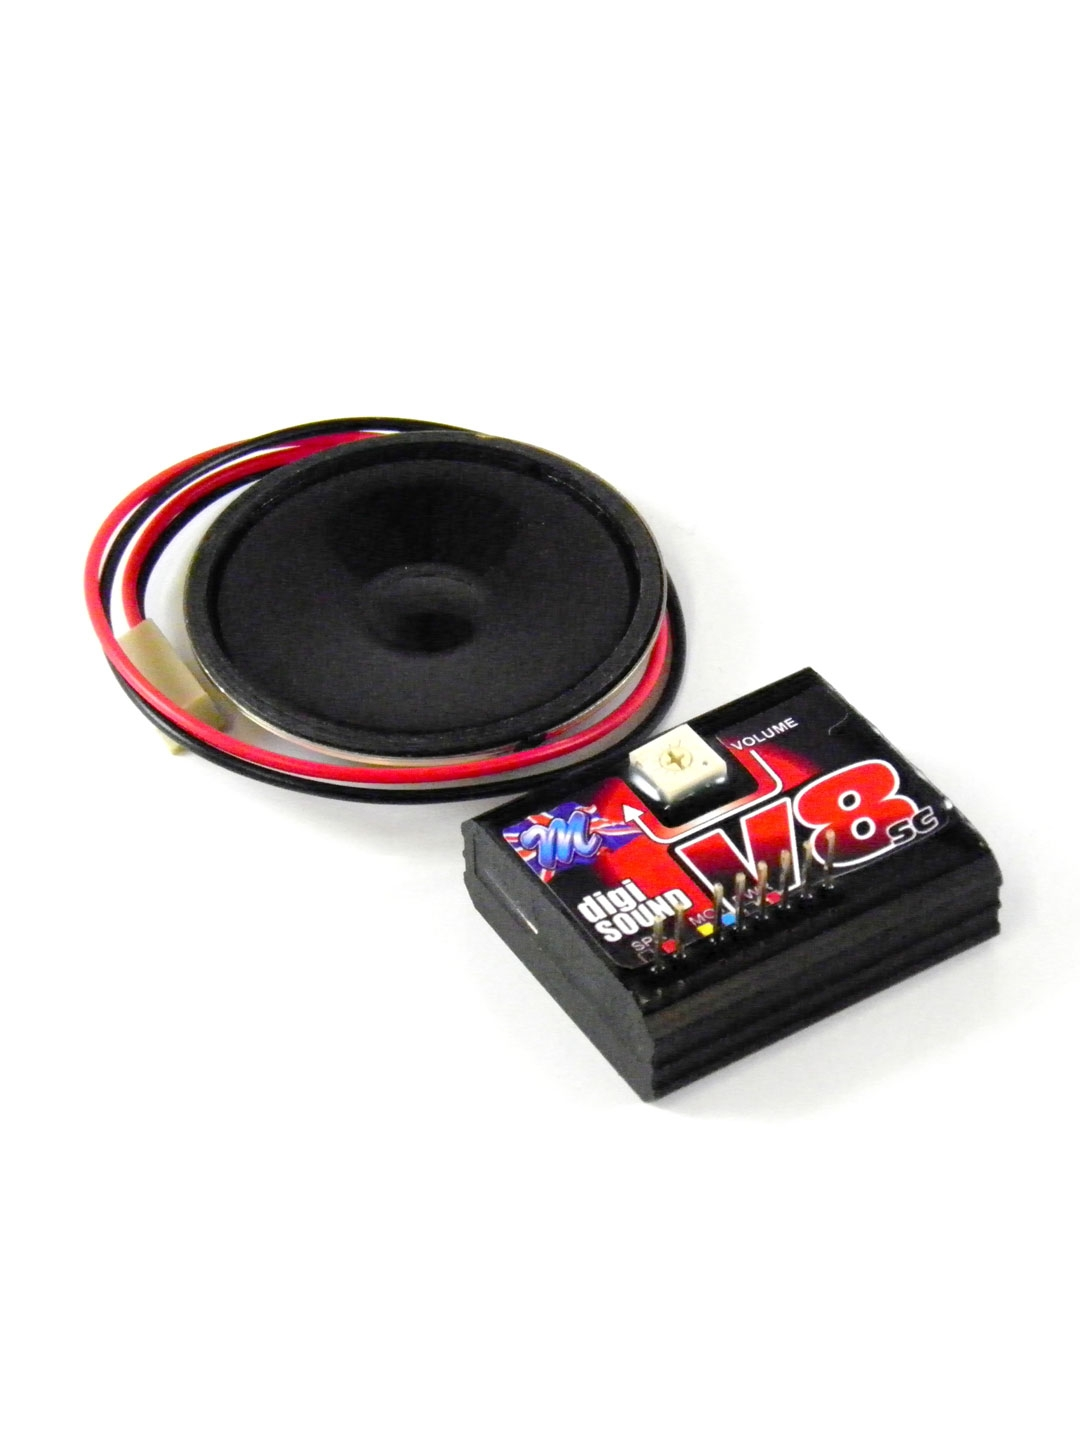 v8 straigh cut with gears sound module for rc cars. Black Bedroom Furniture Sets. Home Design Ideas